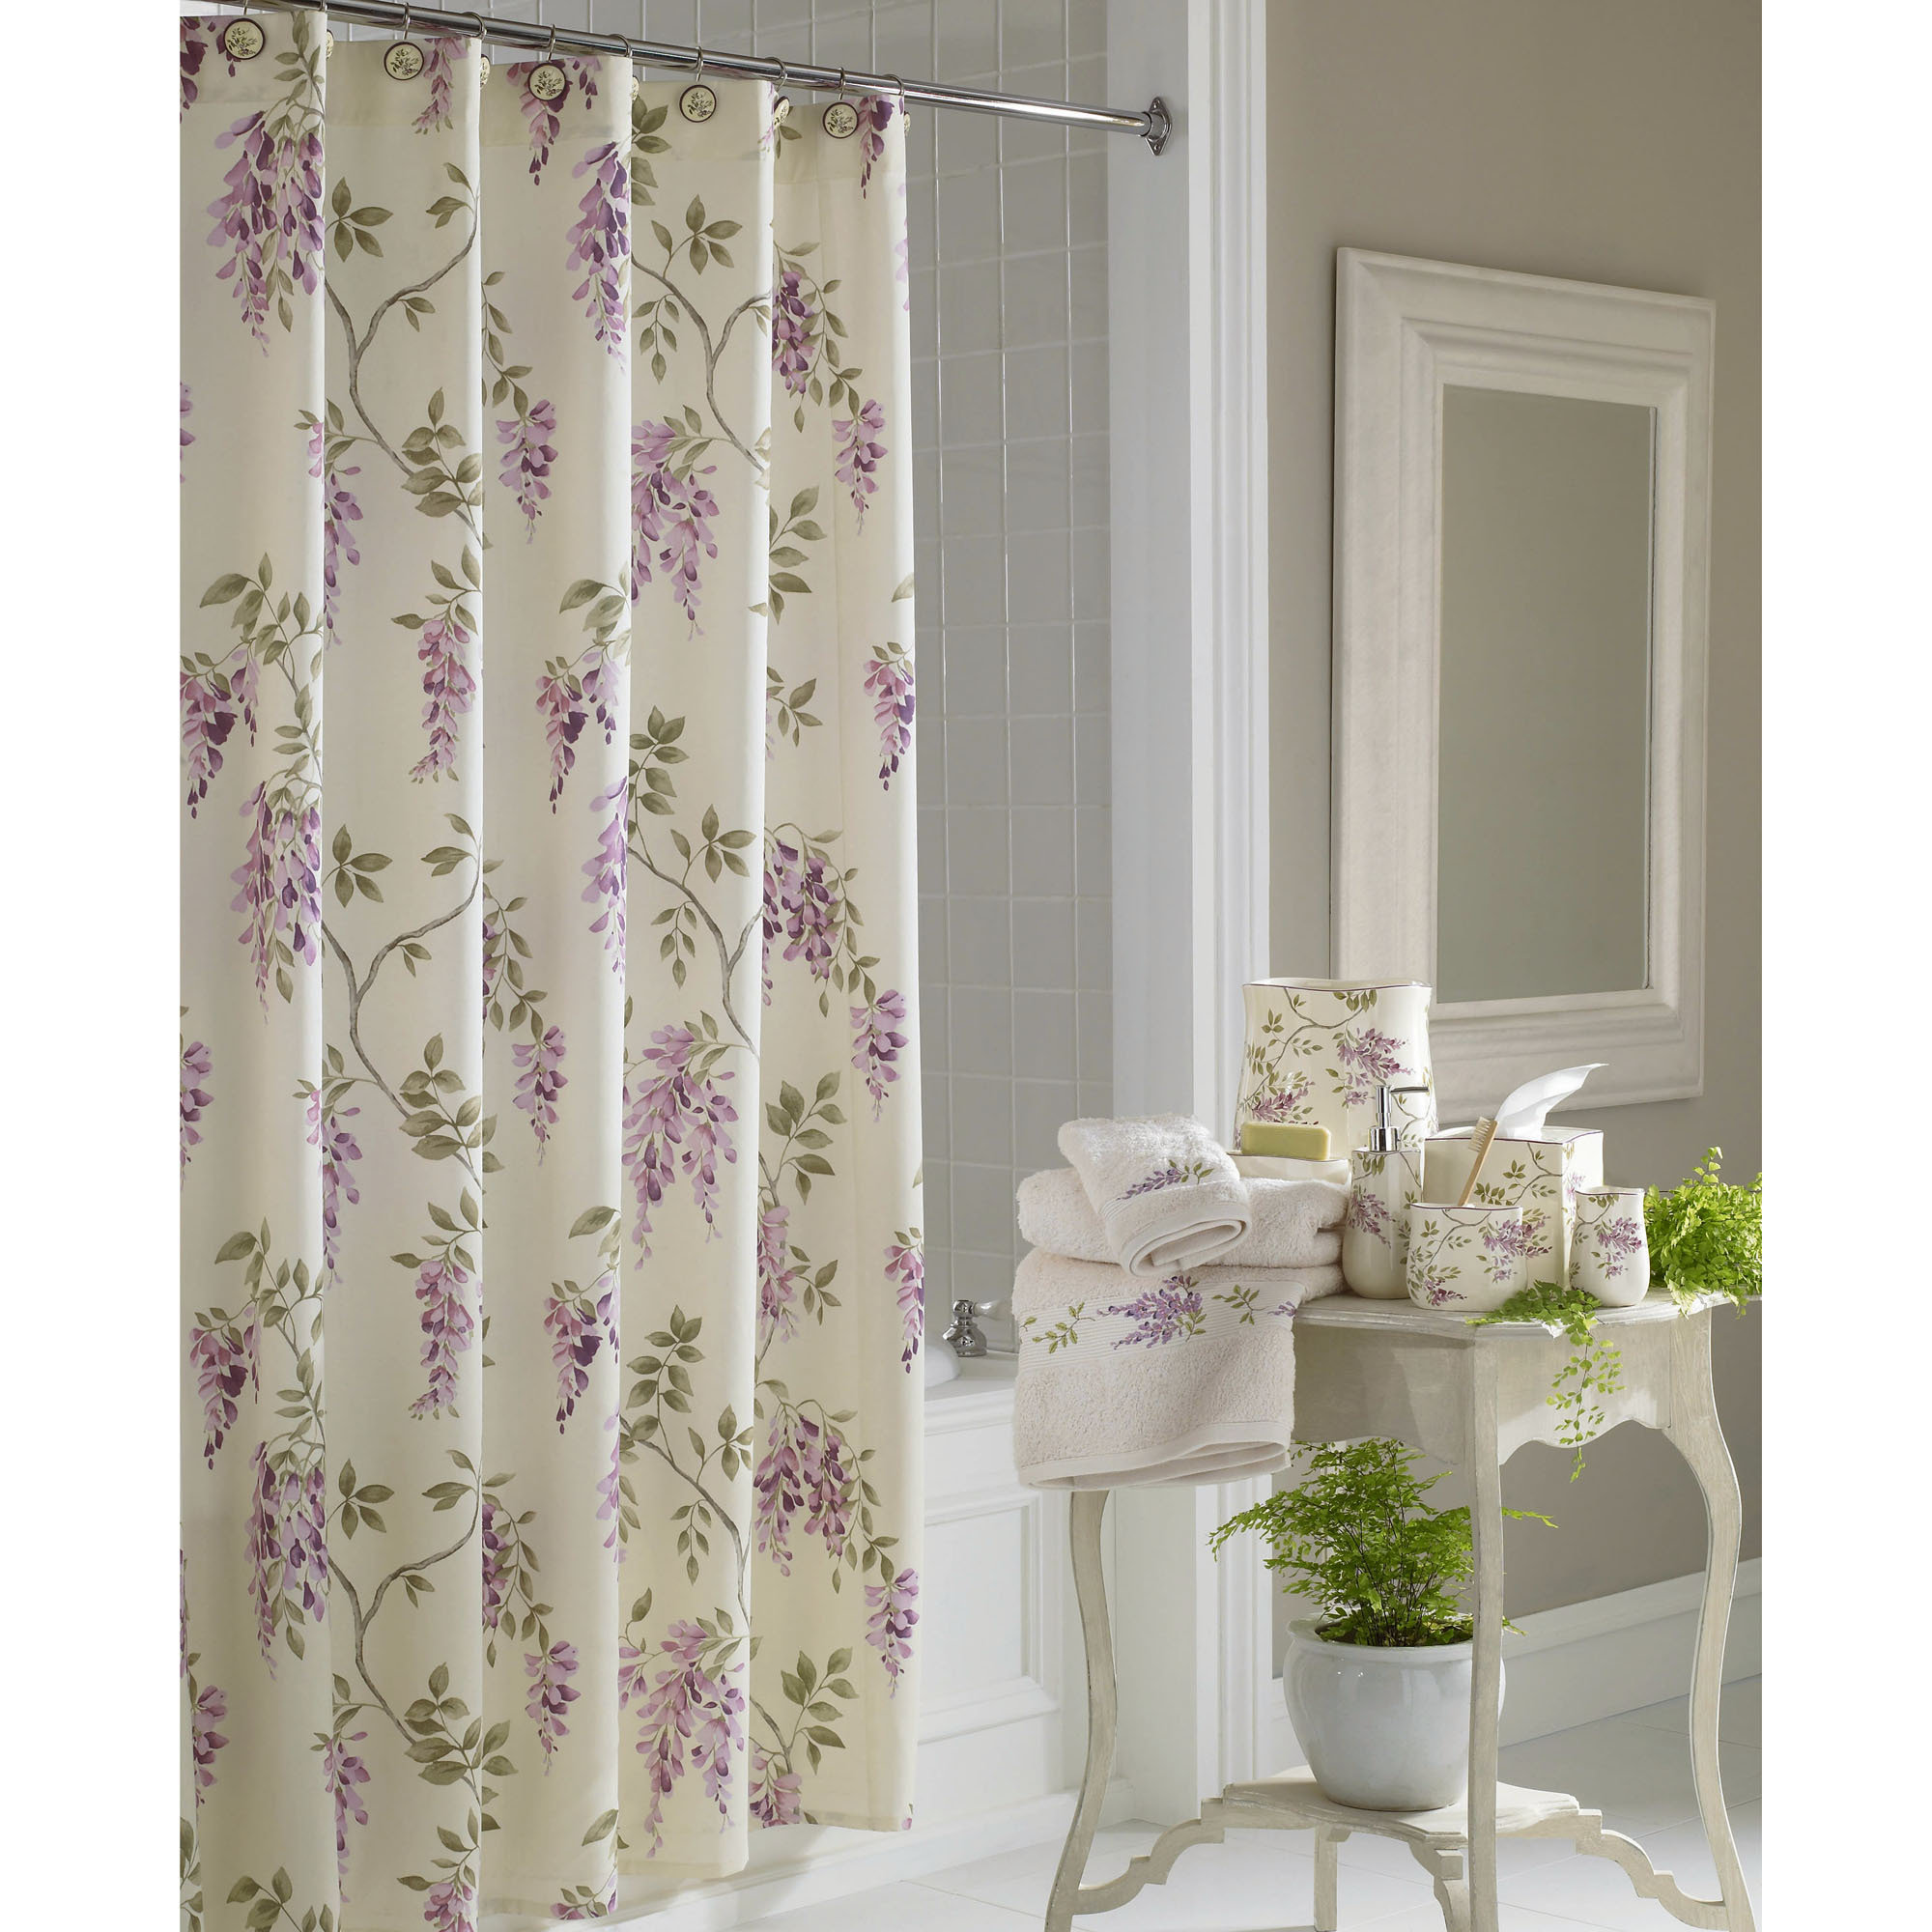 Print Shower Curtain | Tribal Shower Curtain | Floral Shower Curtain